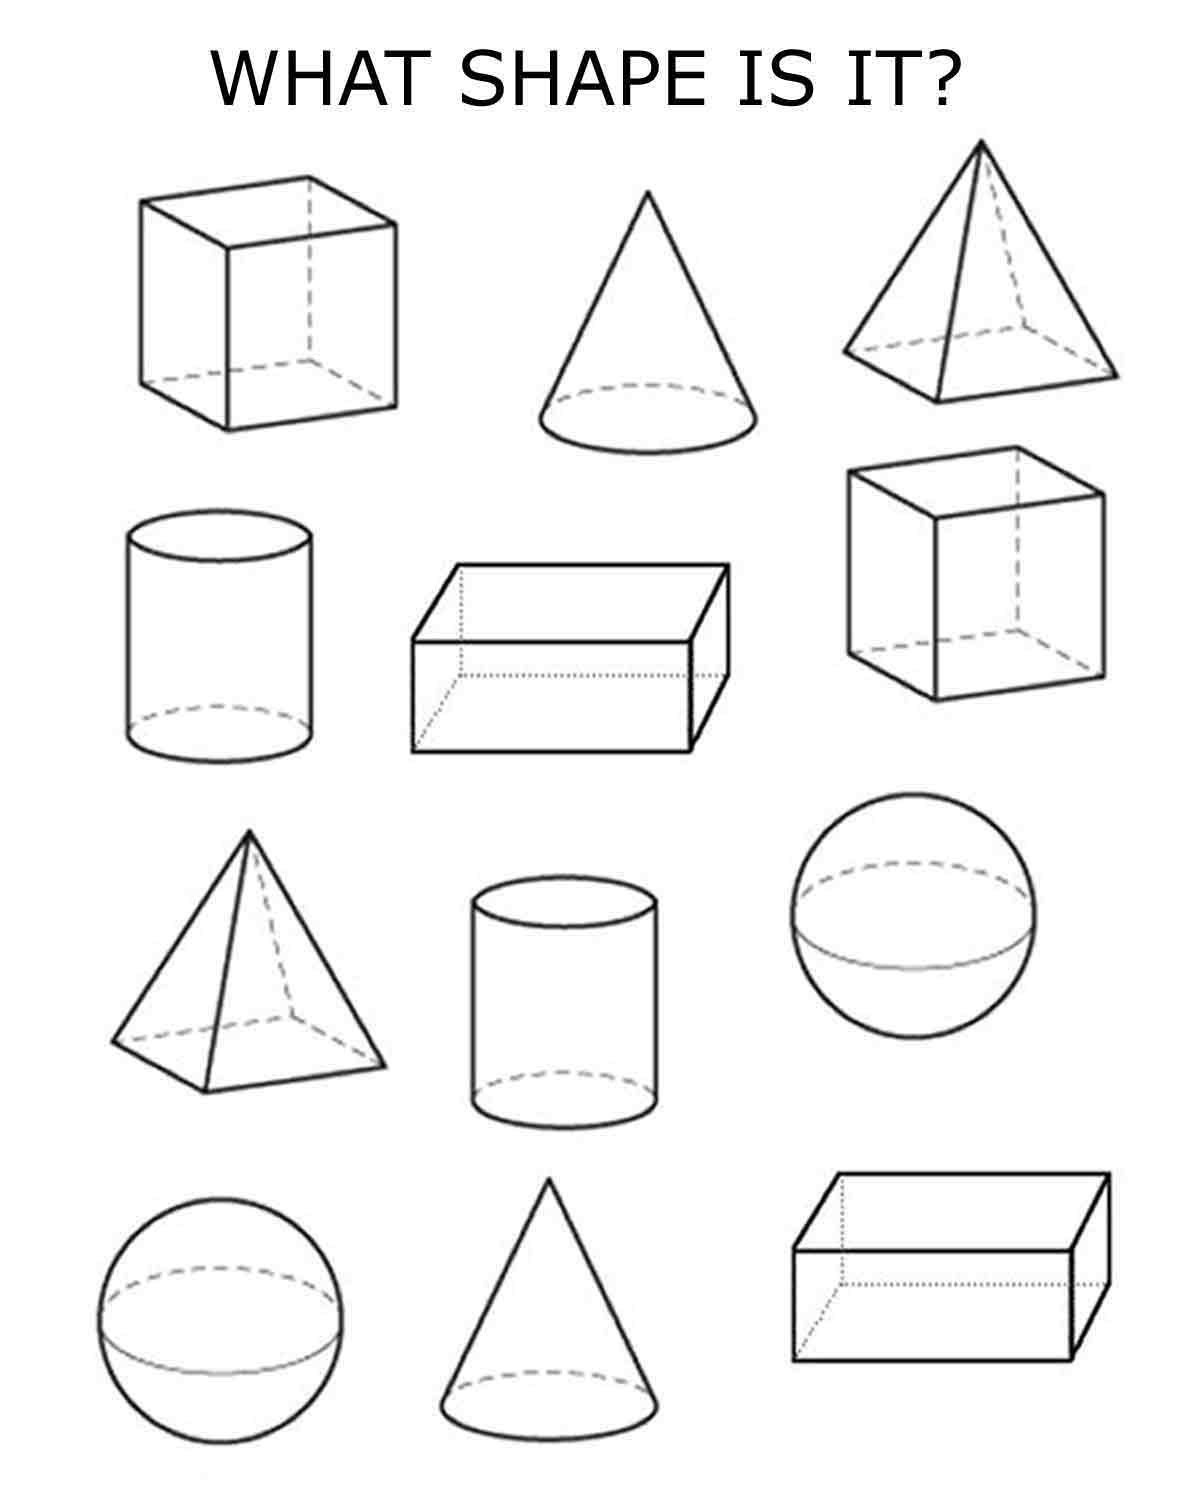 3D Shapes Clip Art Black And White | World Of Example throughout 3D Shapes Clip Art Black And White 19553